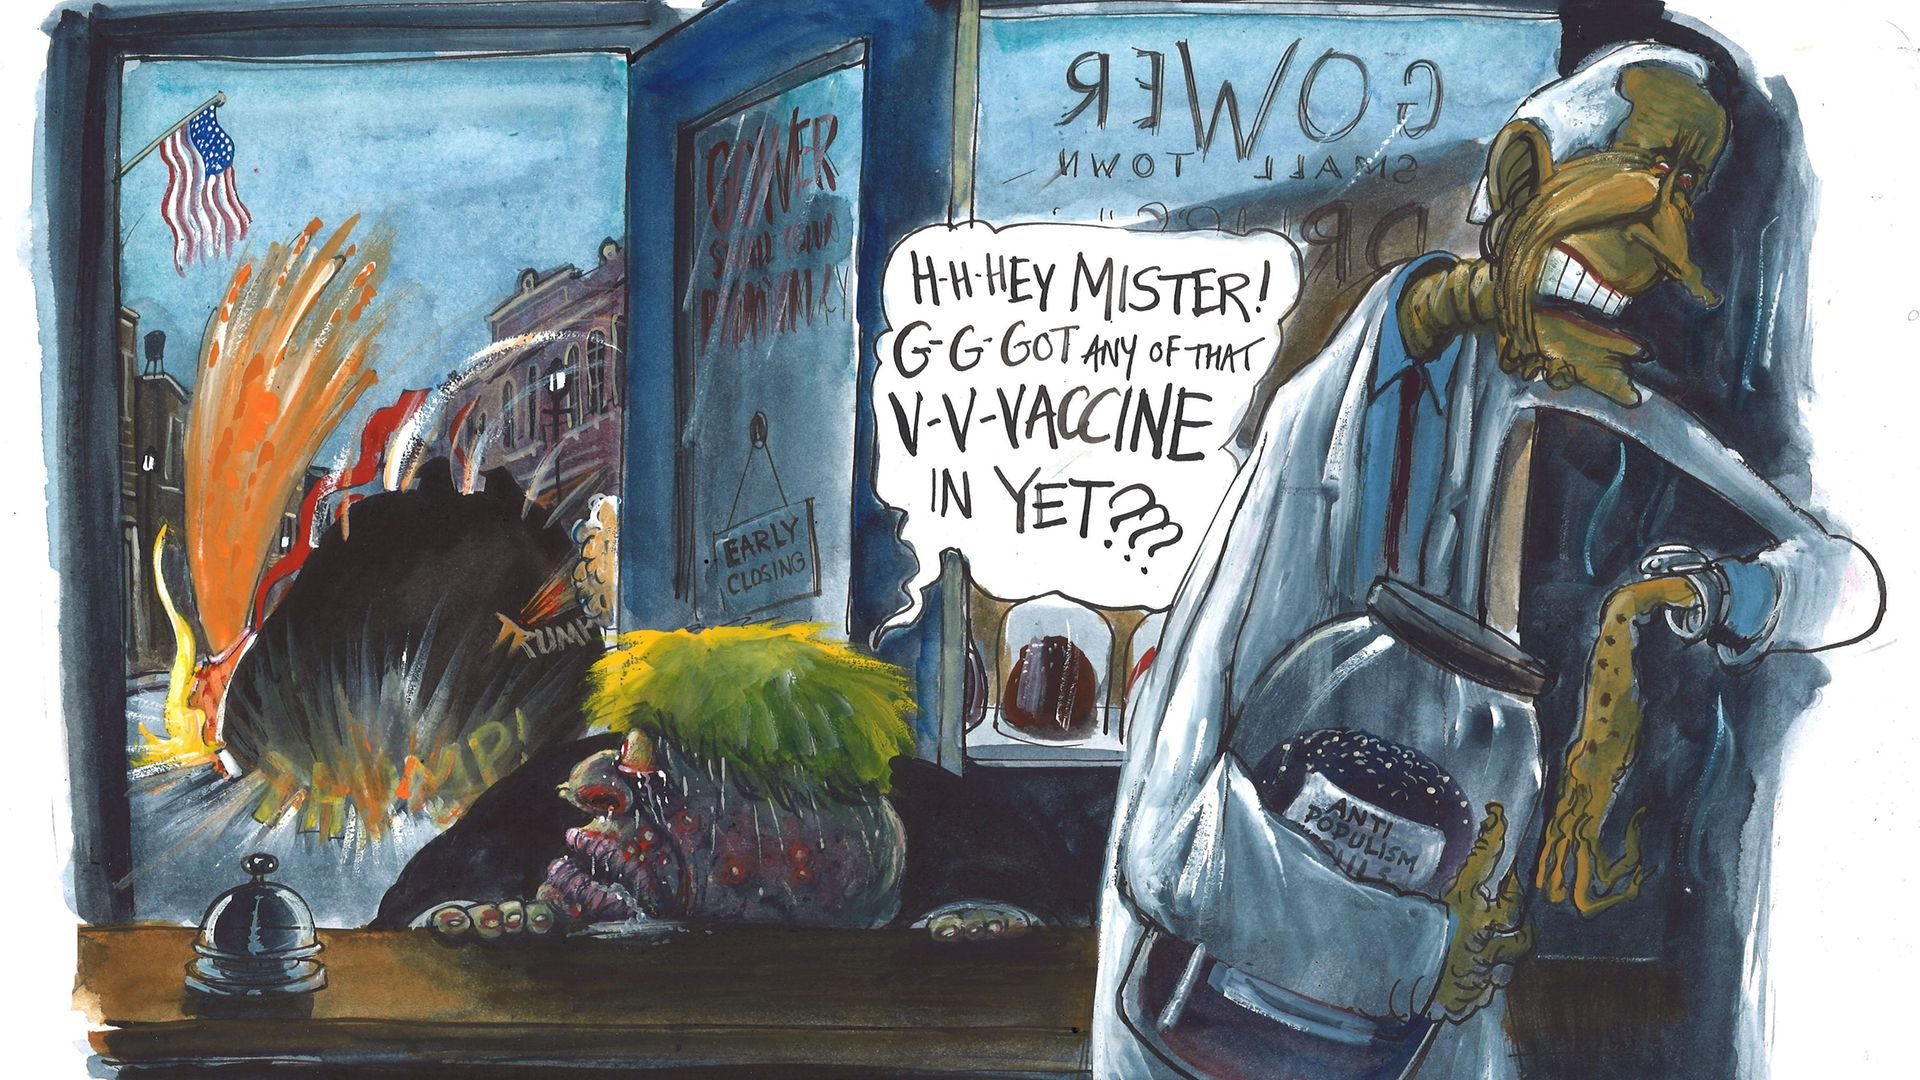 Illustration by Martin Rowson. - Credit: The New European